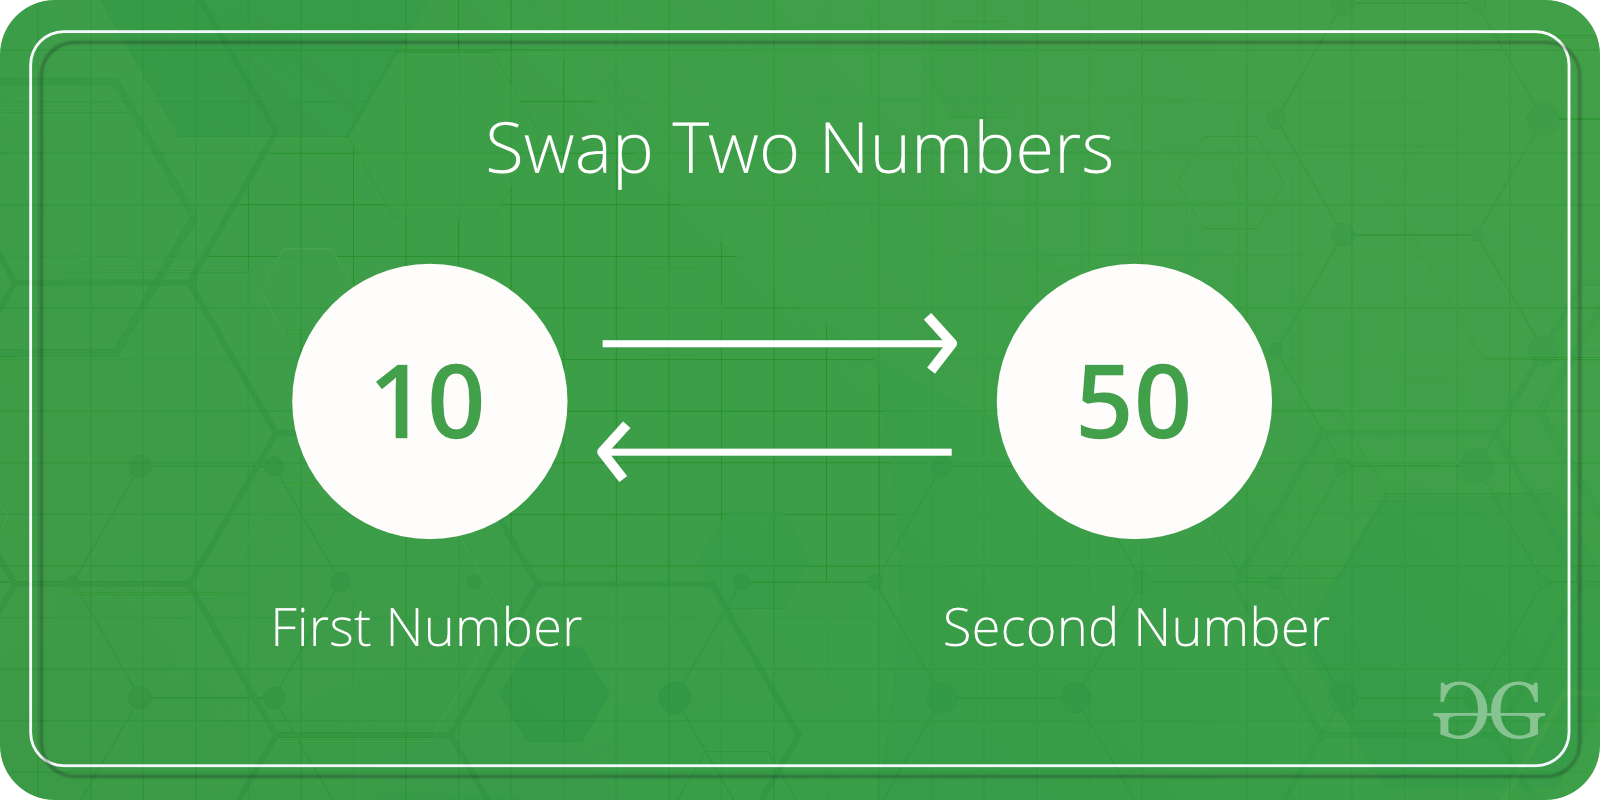 How to swap two numbers without using a temporary variable